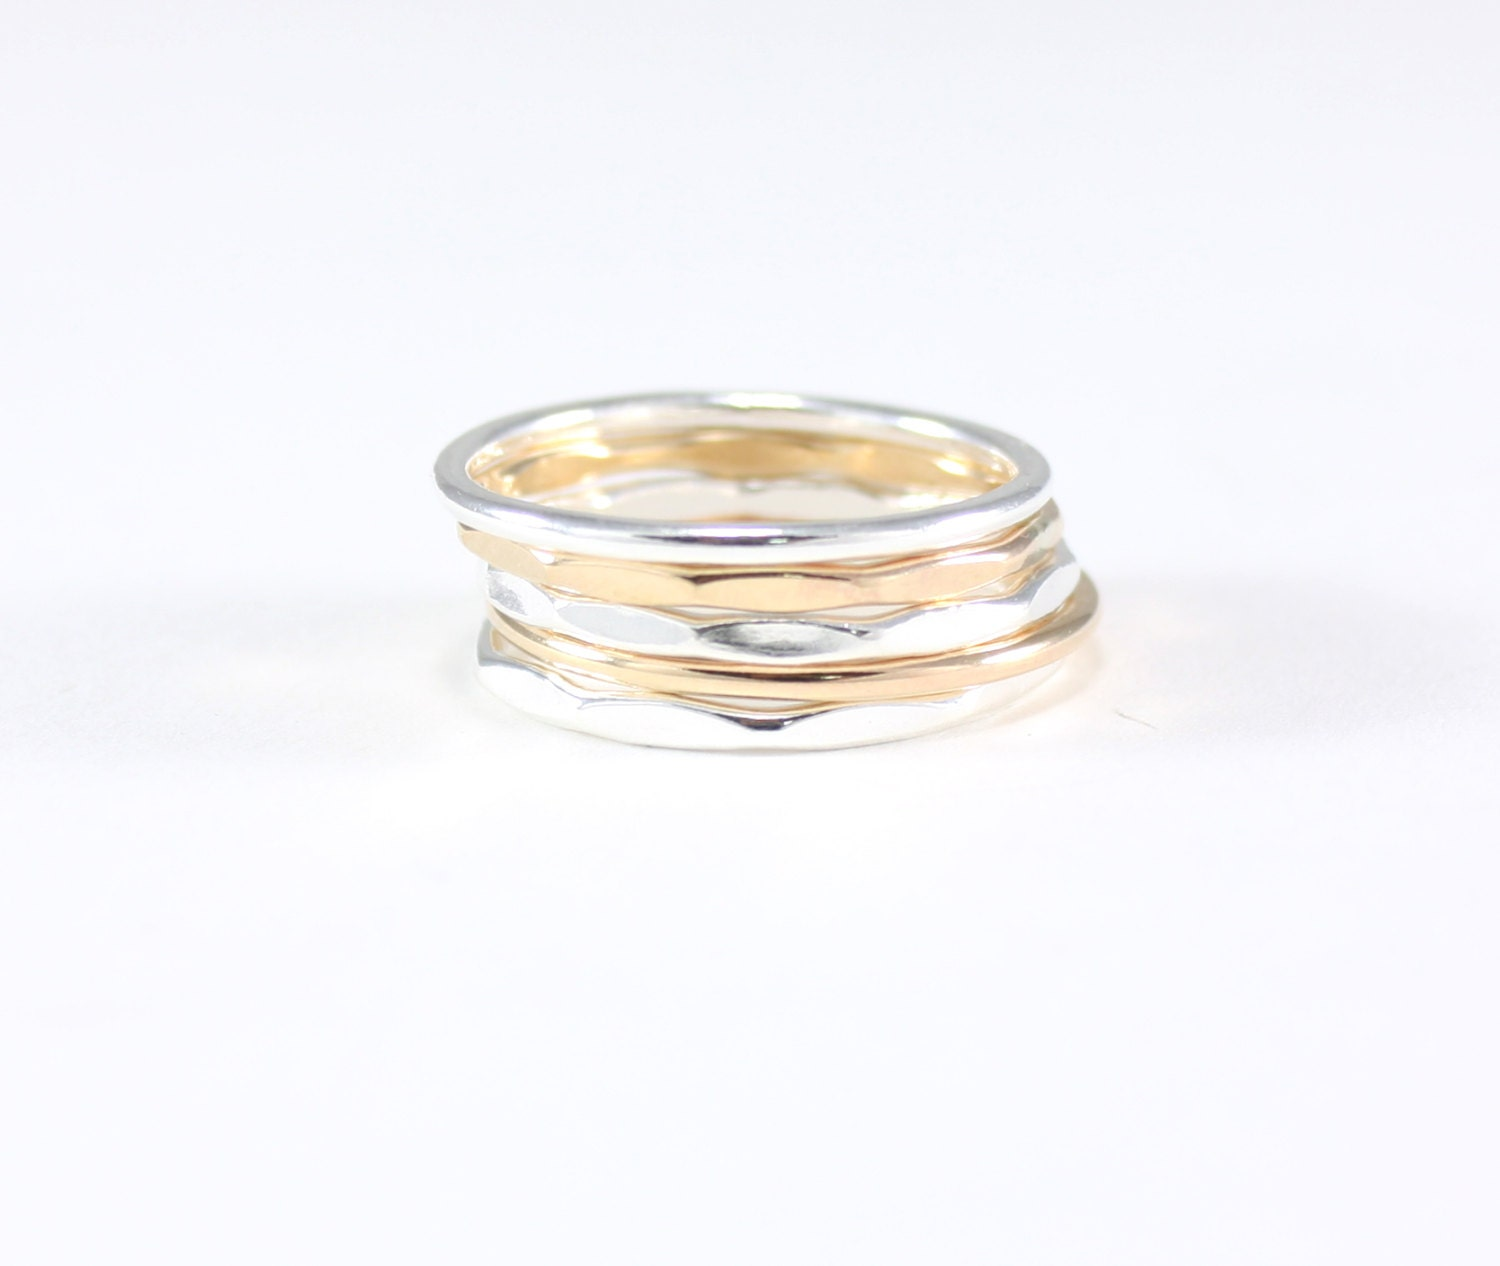 recycled silver and gold stacking rings set of 5